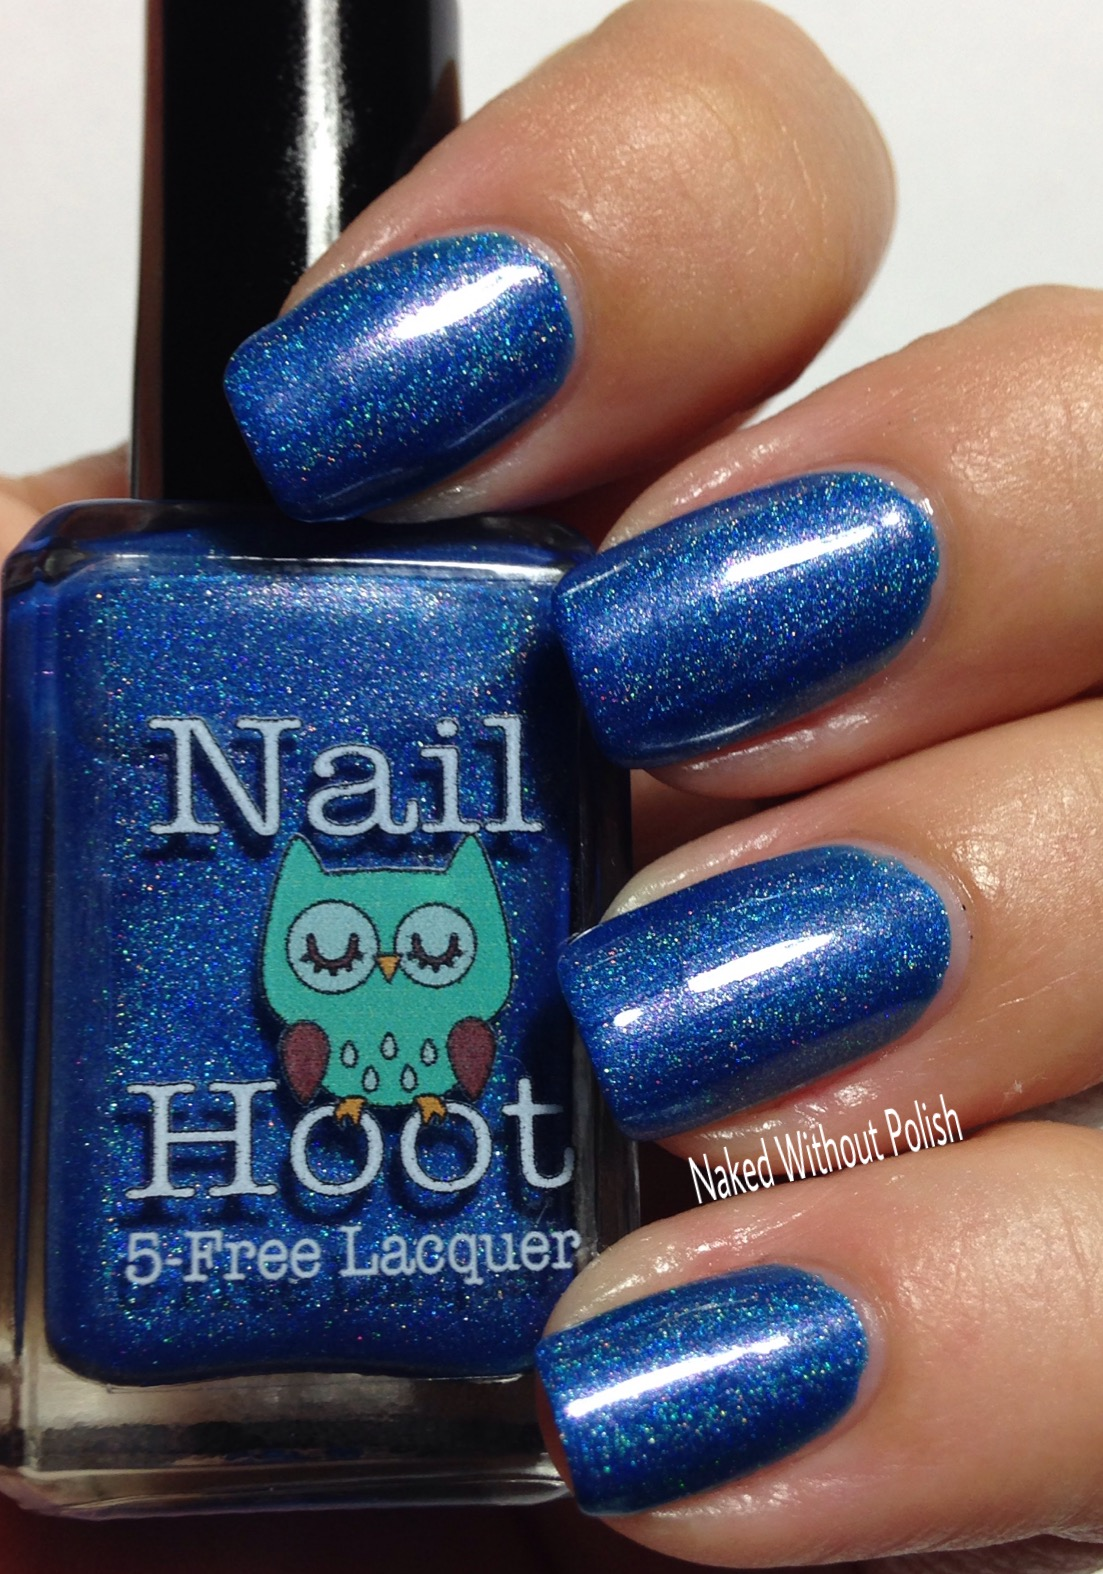 Polish-Pickup-Nail-Hoot-Dont-Call-Me-Sugar-11